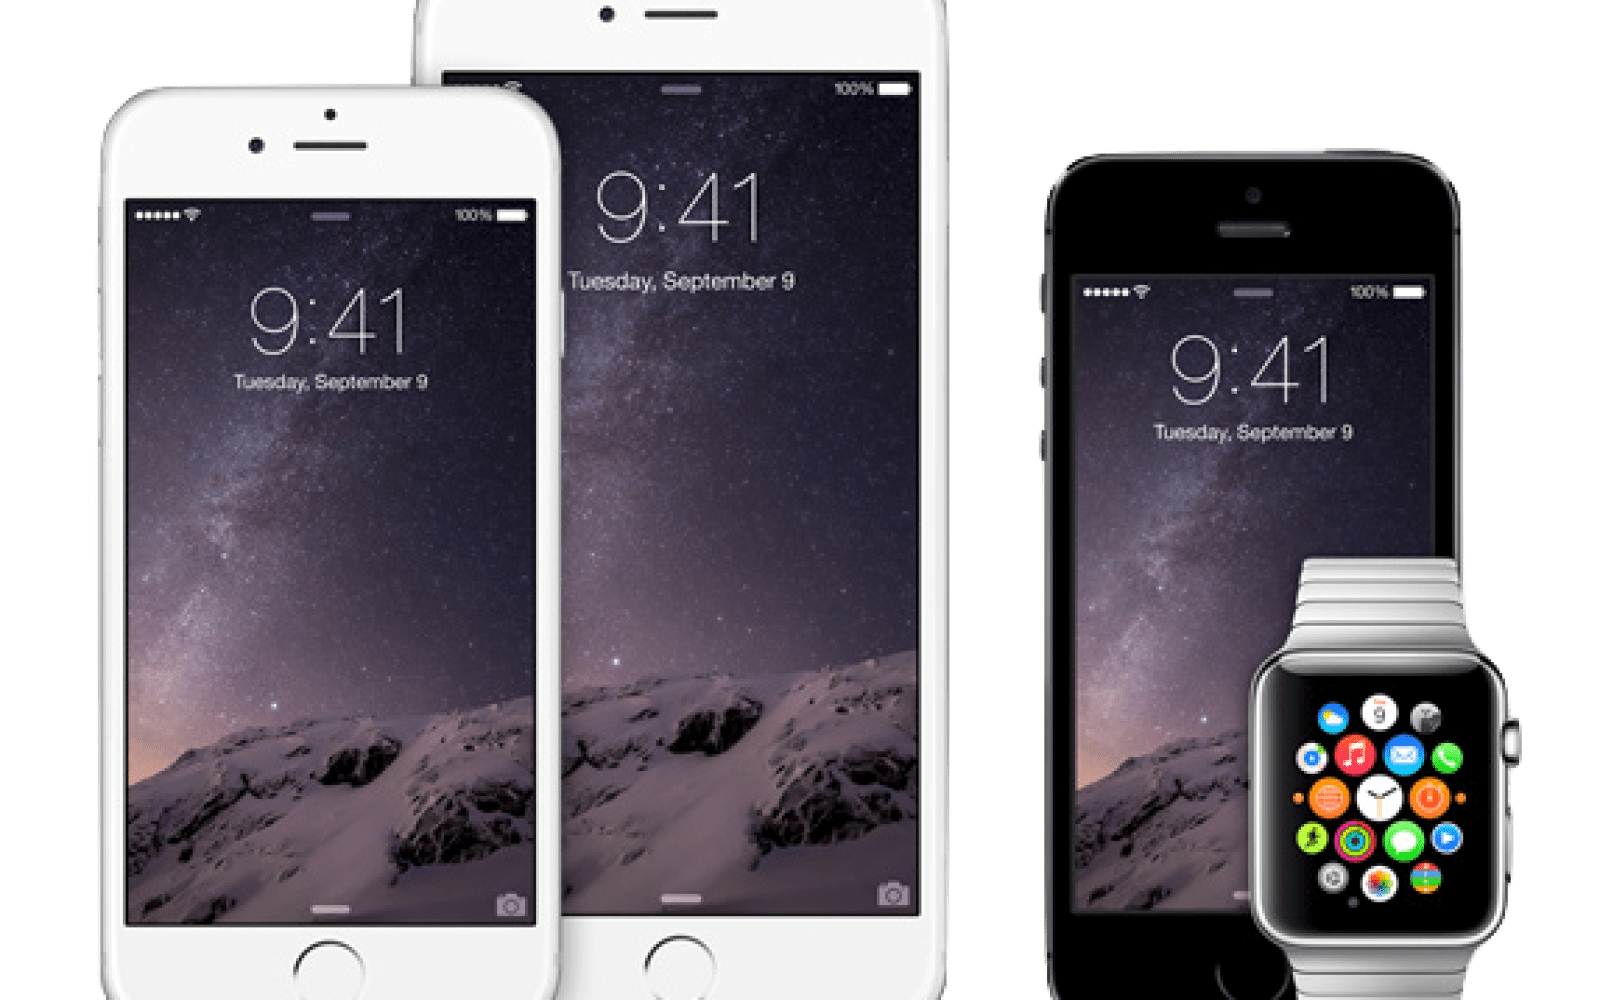 Apple Watch to be managed by a dedicated iPhone app, Watch apps are installed from the phone